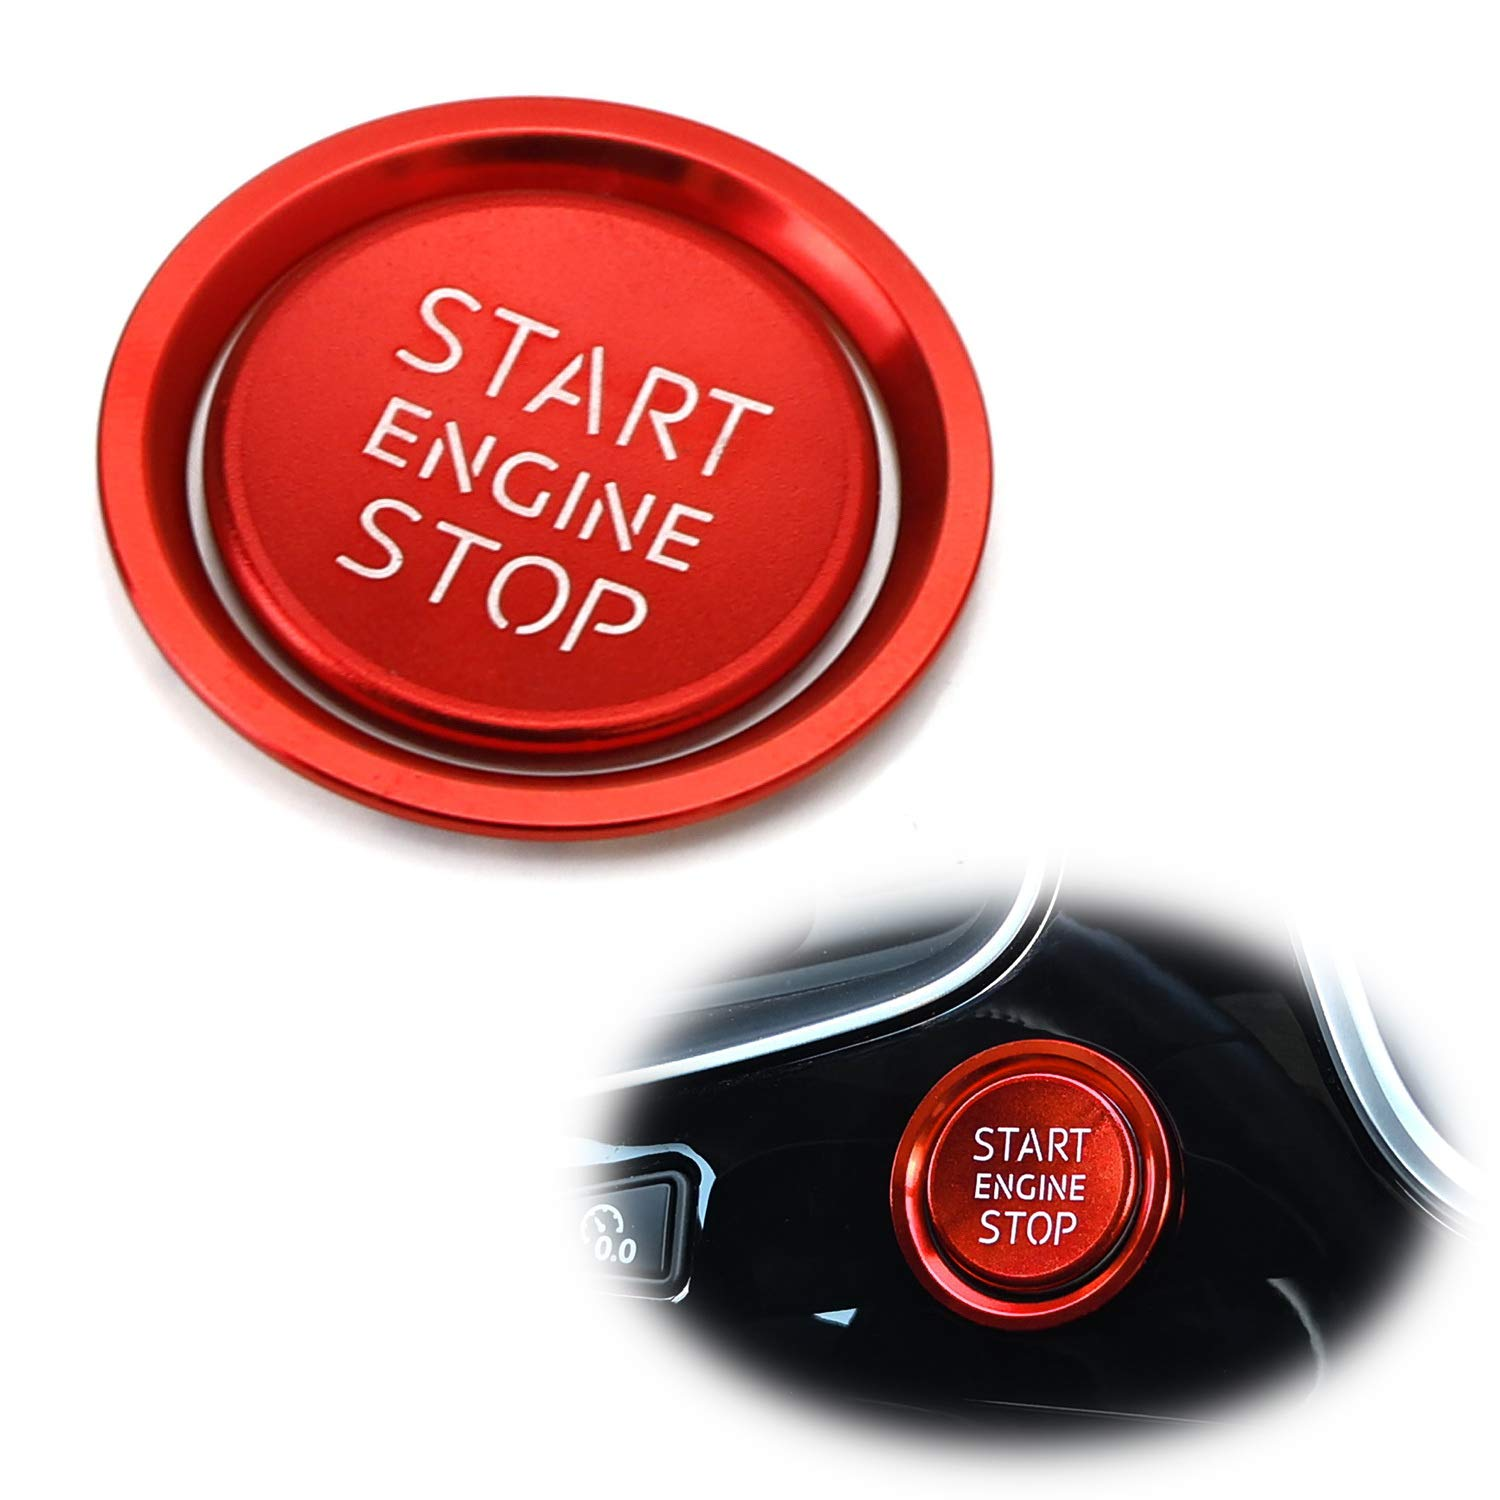 iJDMTOY (1) S-Line RS Style Red Aluminum Keyless Engine Push Start Button w/Surrounding Ring Trim For Audi A4 A5 A6 A7 A8 Q5, etc iJDMTOY Auto Accessories Peel-N-Apply Self-Adhesive Ring/Cover